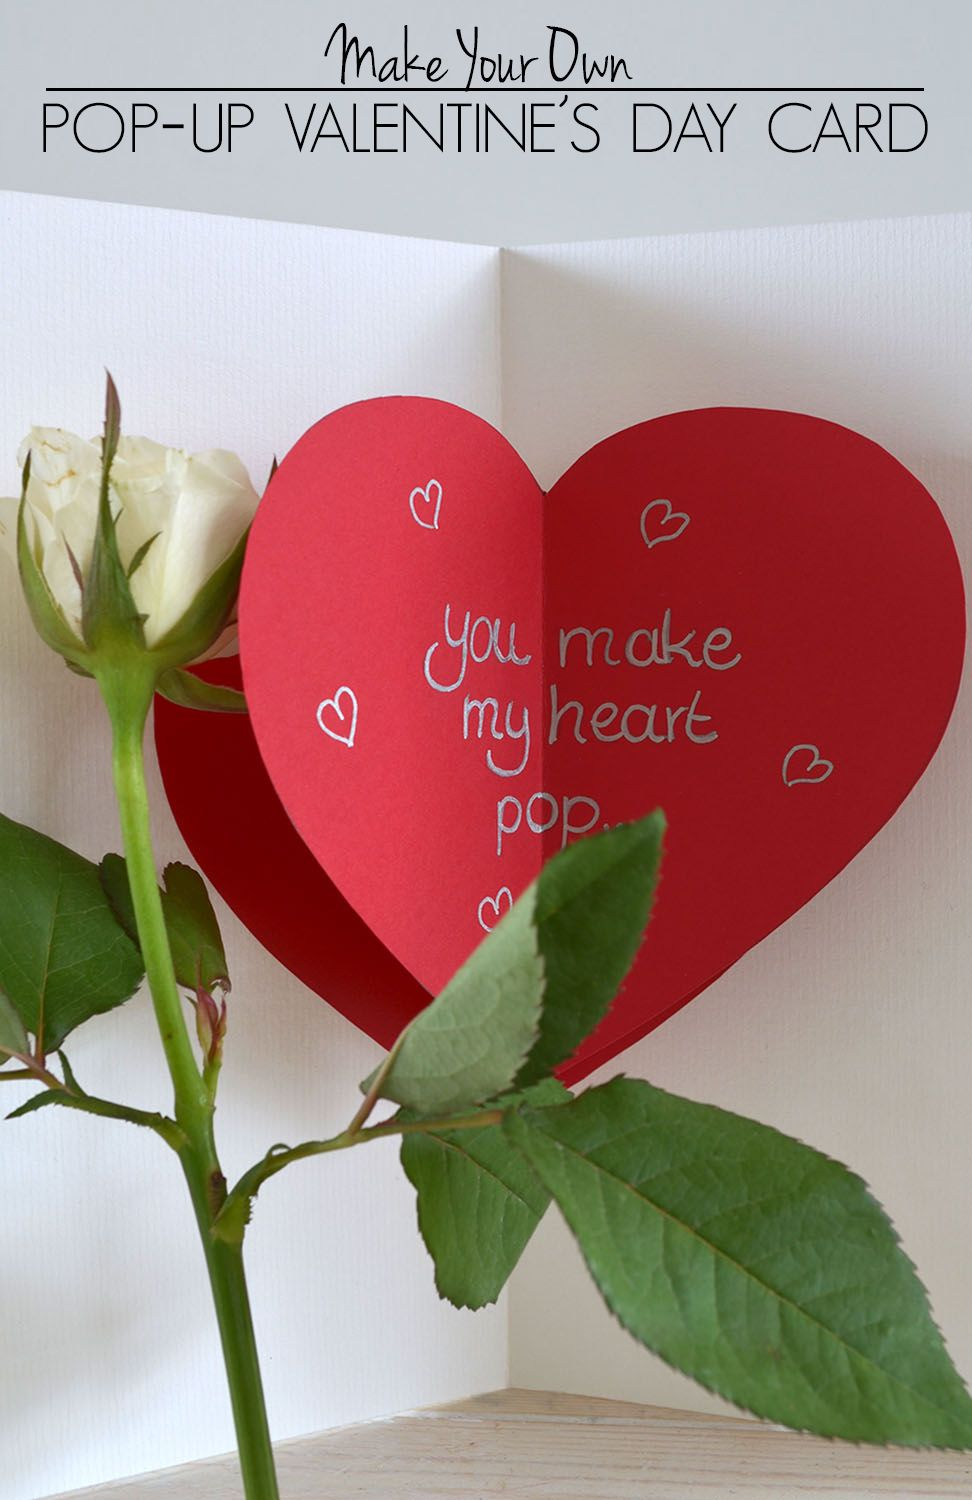 orst valentines day cards - HD972×1500